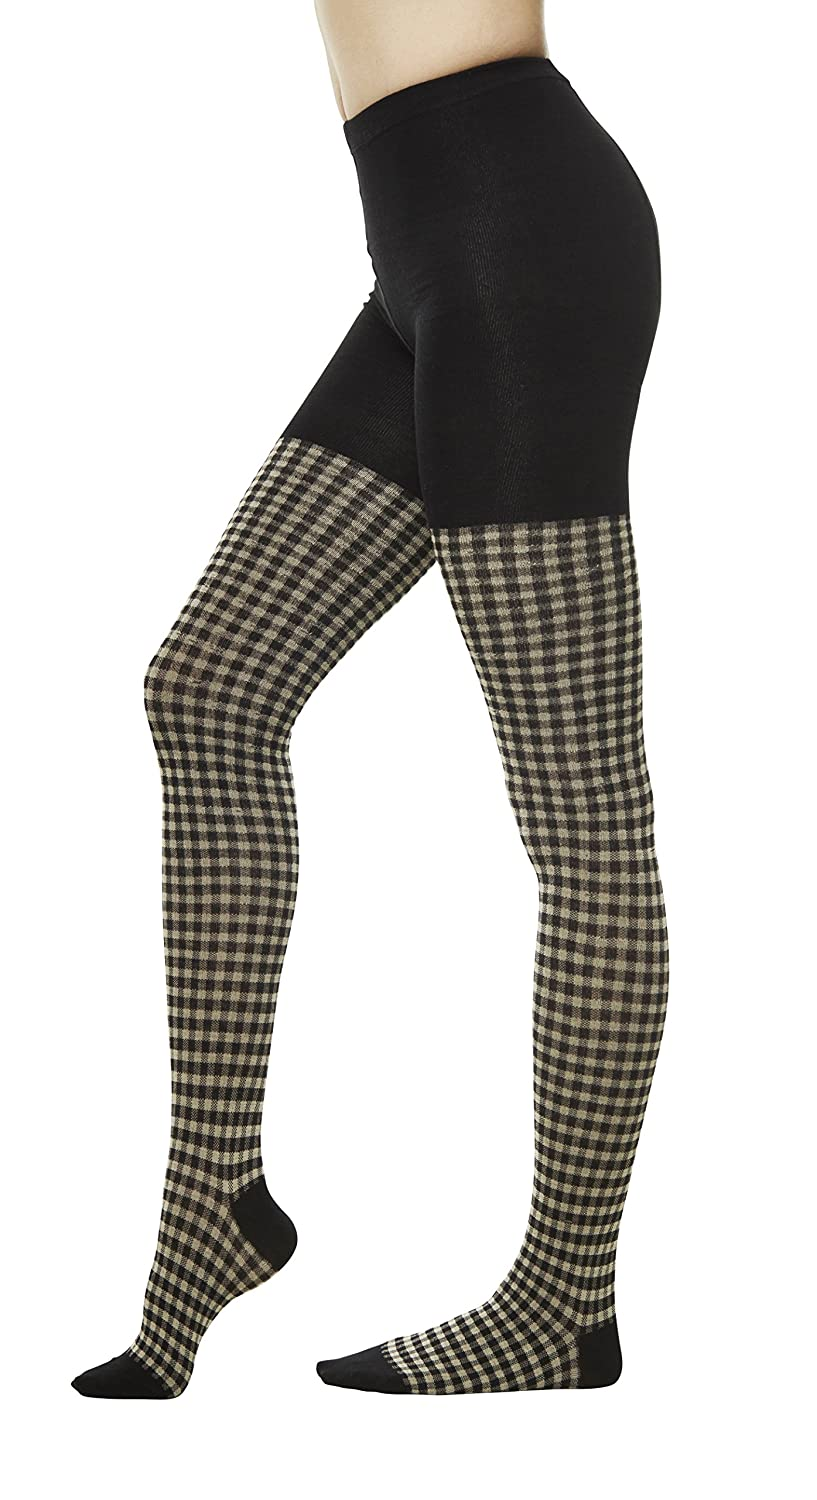 413c3e2997256 Women Winter Cotton Check Print Knit Sweater Footed Tights (One Size : XS  to M, Black) at Amazon Women's Clothing store: